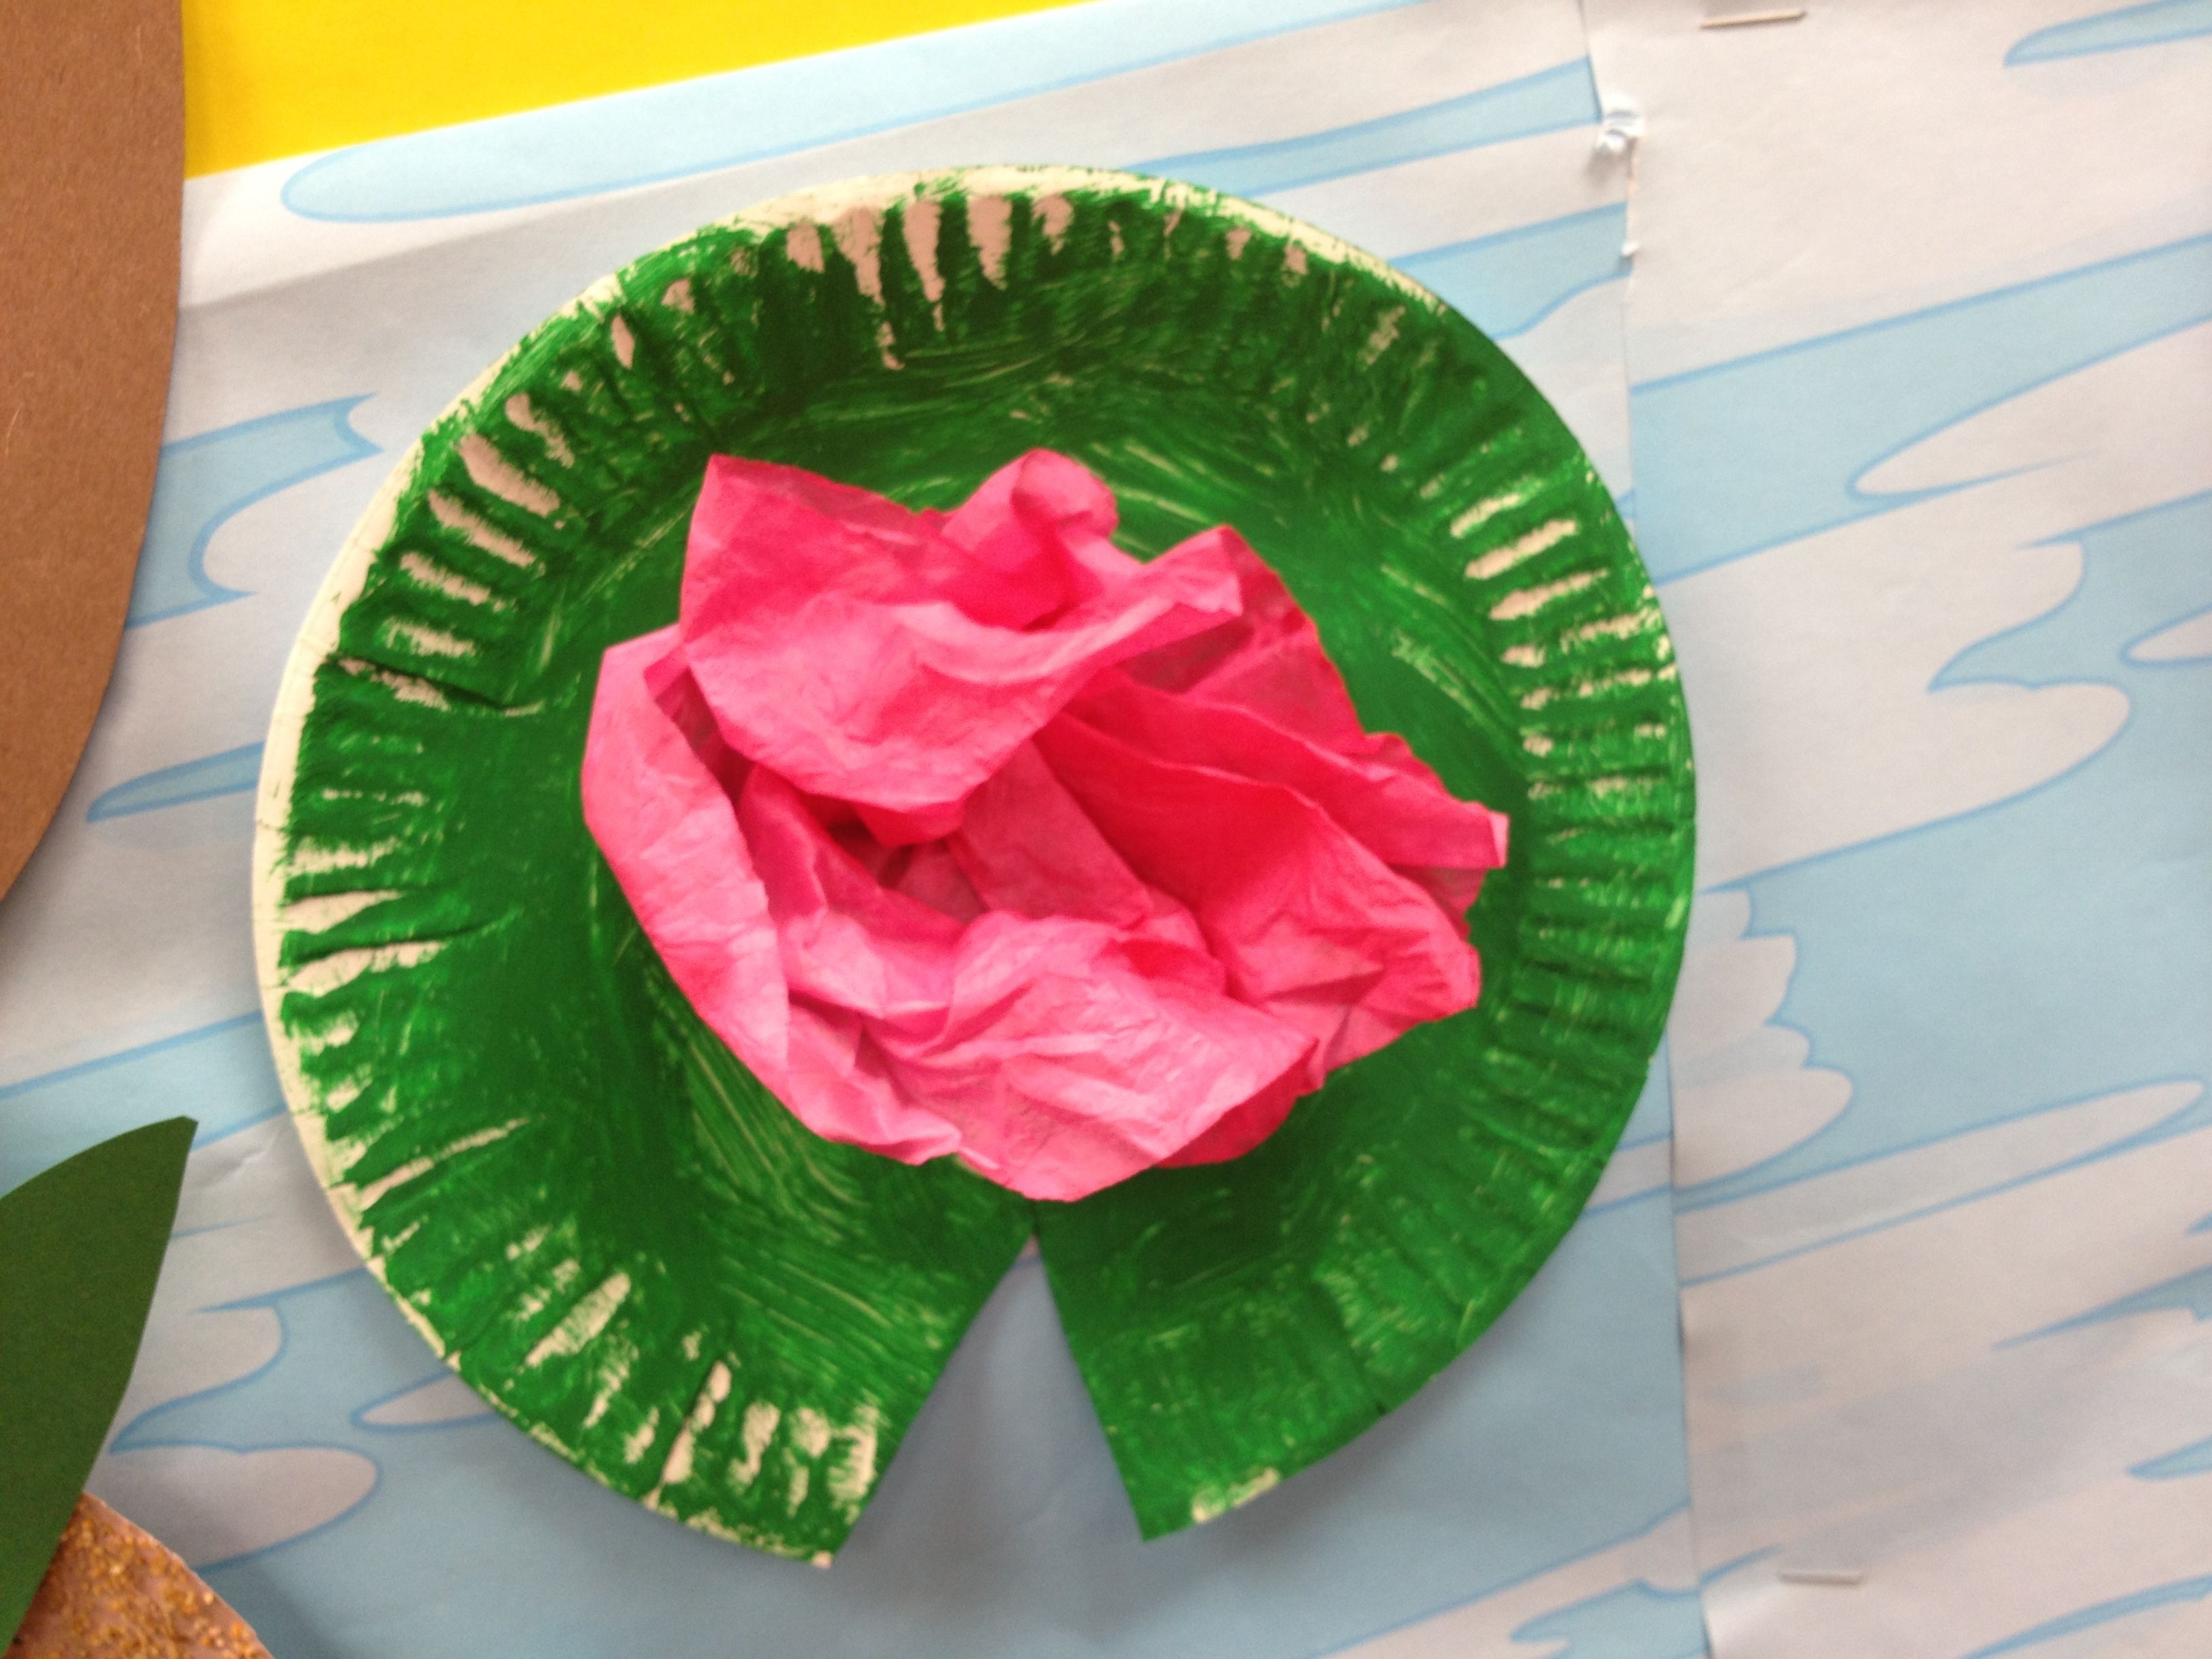 Lily Pads Made Out Of The Little Paper Plates And A Coffee Filter That Was Colored With A Pink